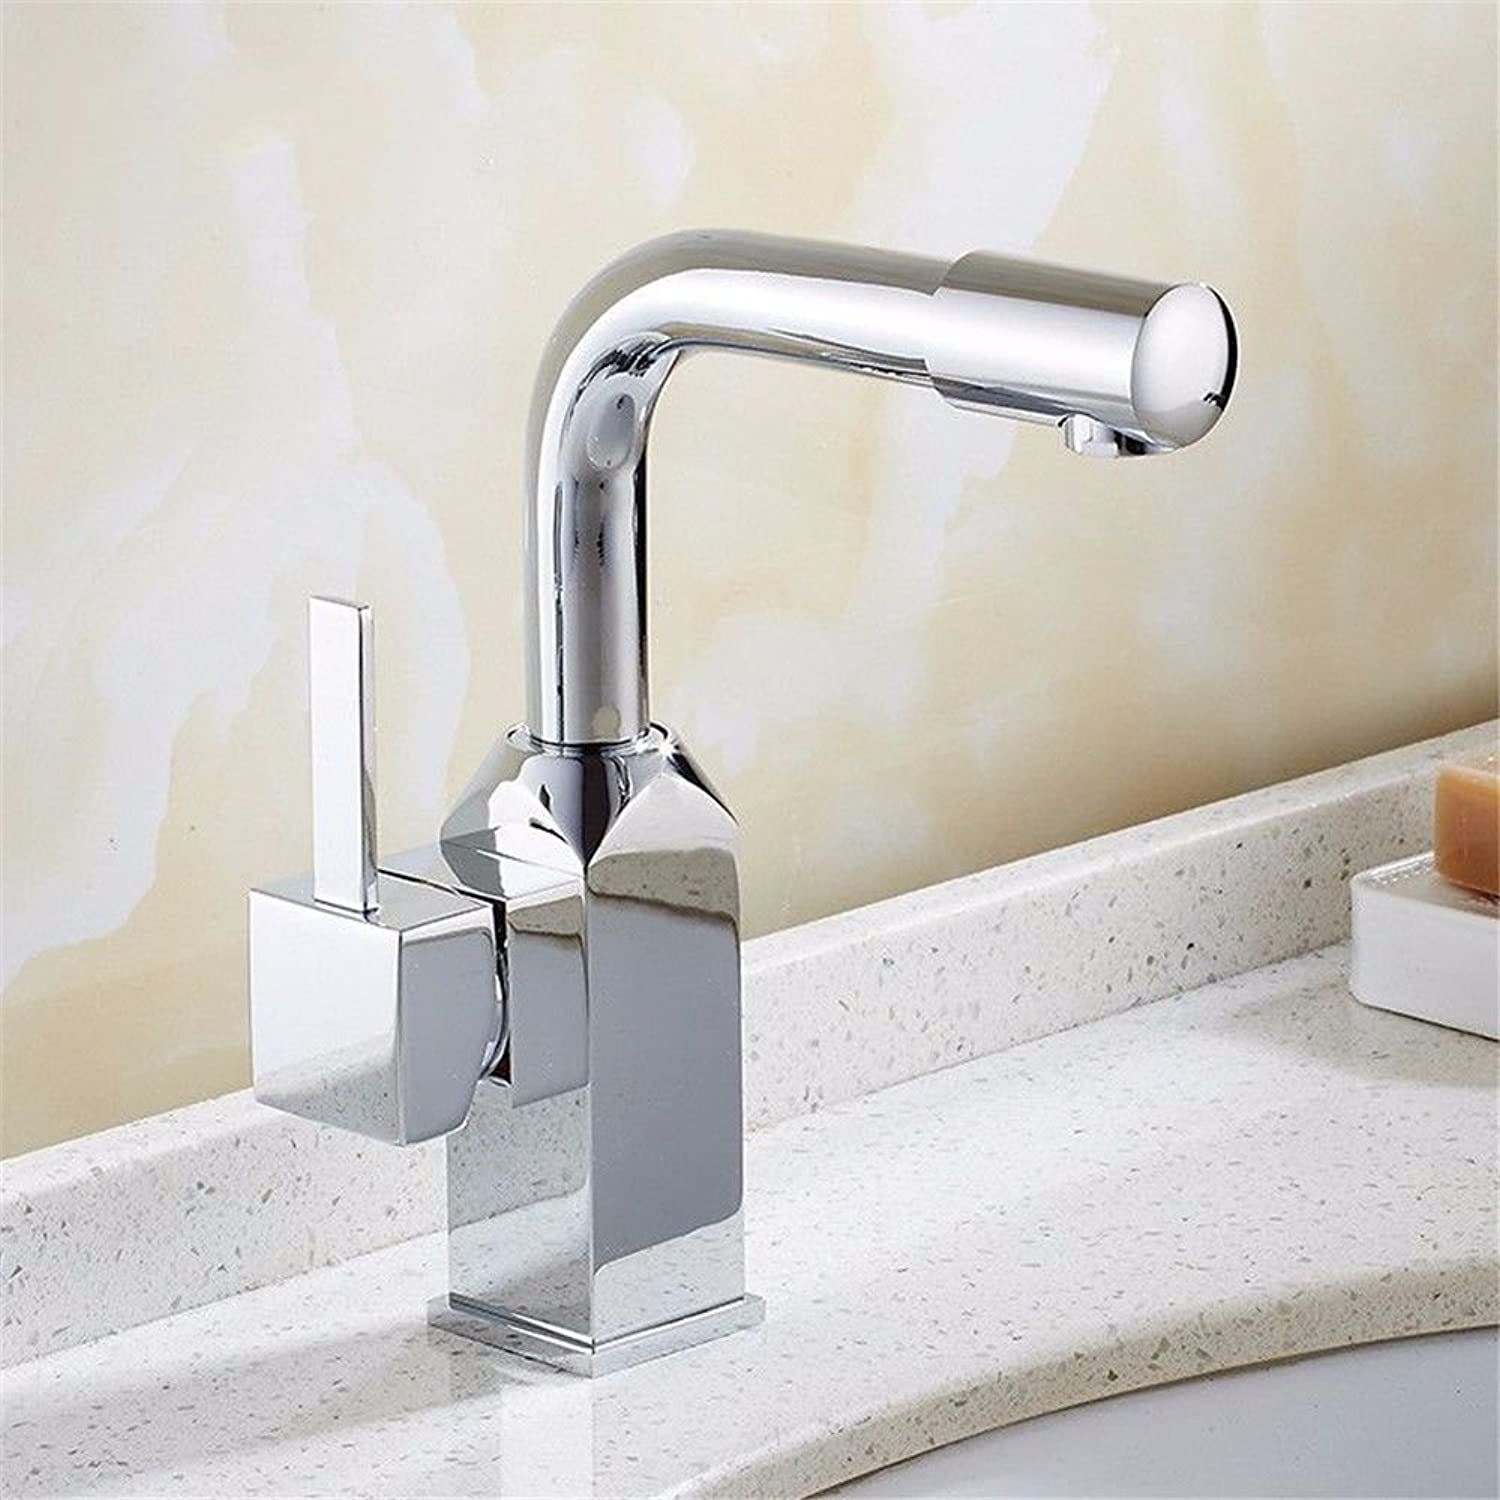 Ywqwdae Bathroom Sink Basin Tap Brass Mixer Tap Washroom Mixer Faucet The white paint mixer full copper hot and cold on the tub basin Washbasin Faucet atmosphere Restroom Fixtures Commercial Bathroom Sink Taps